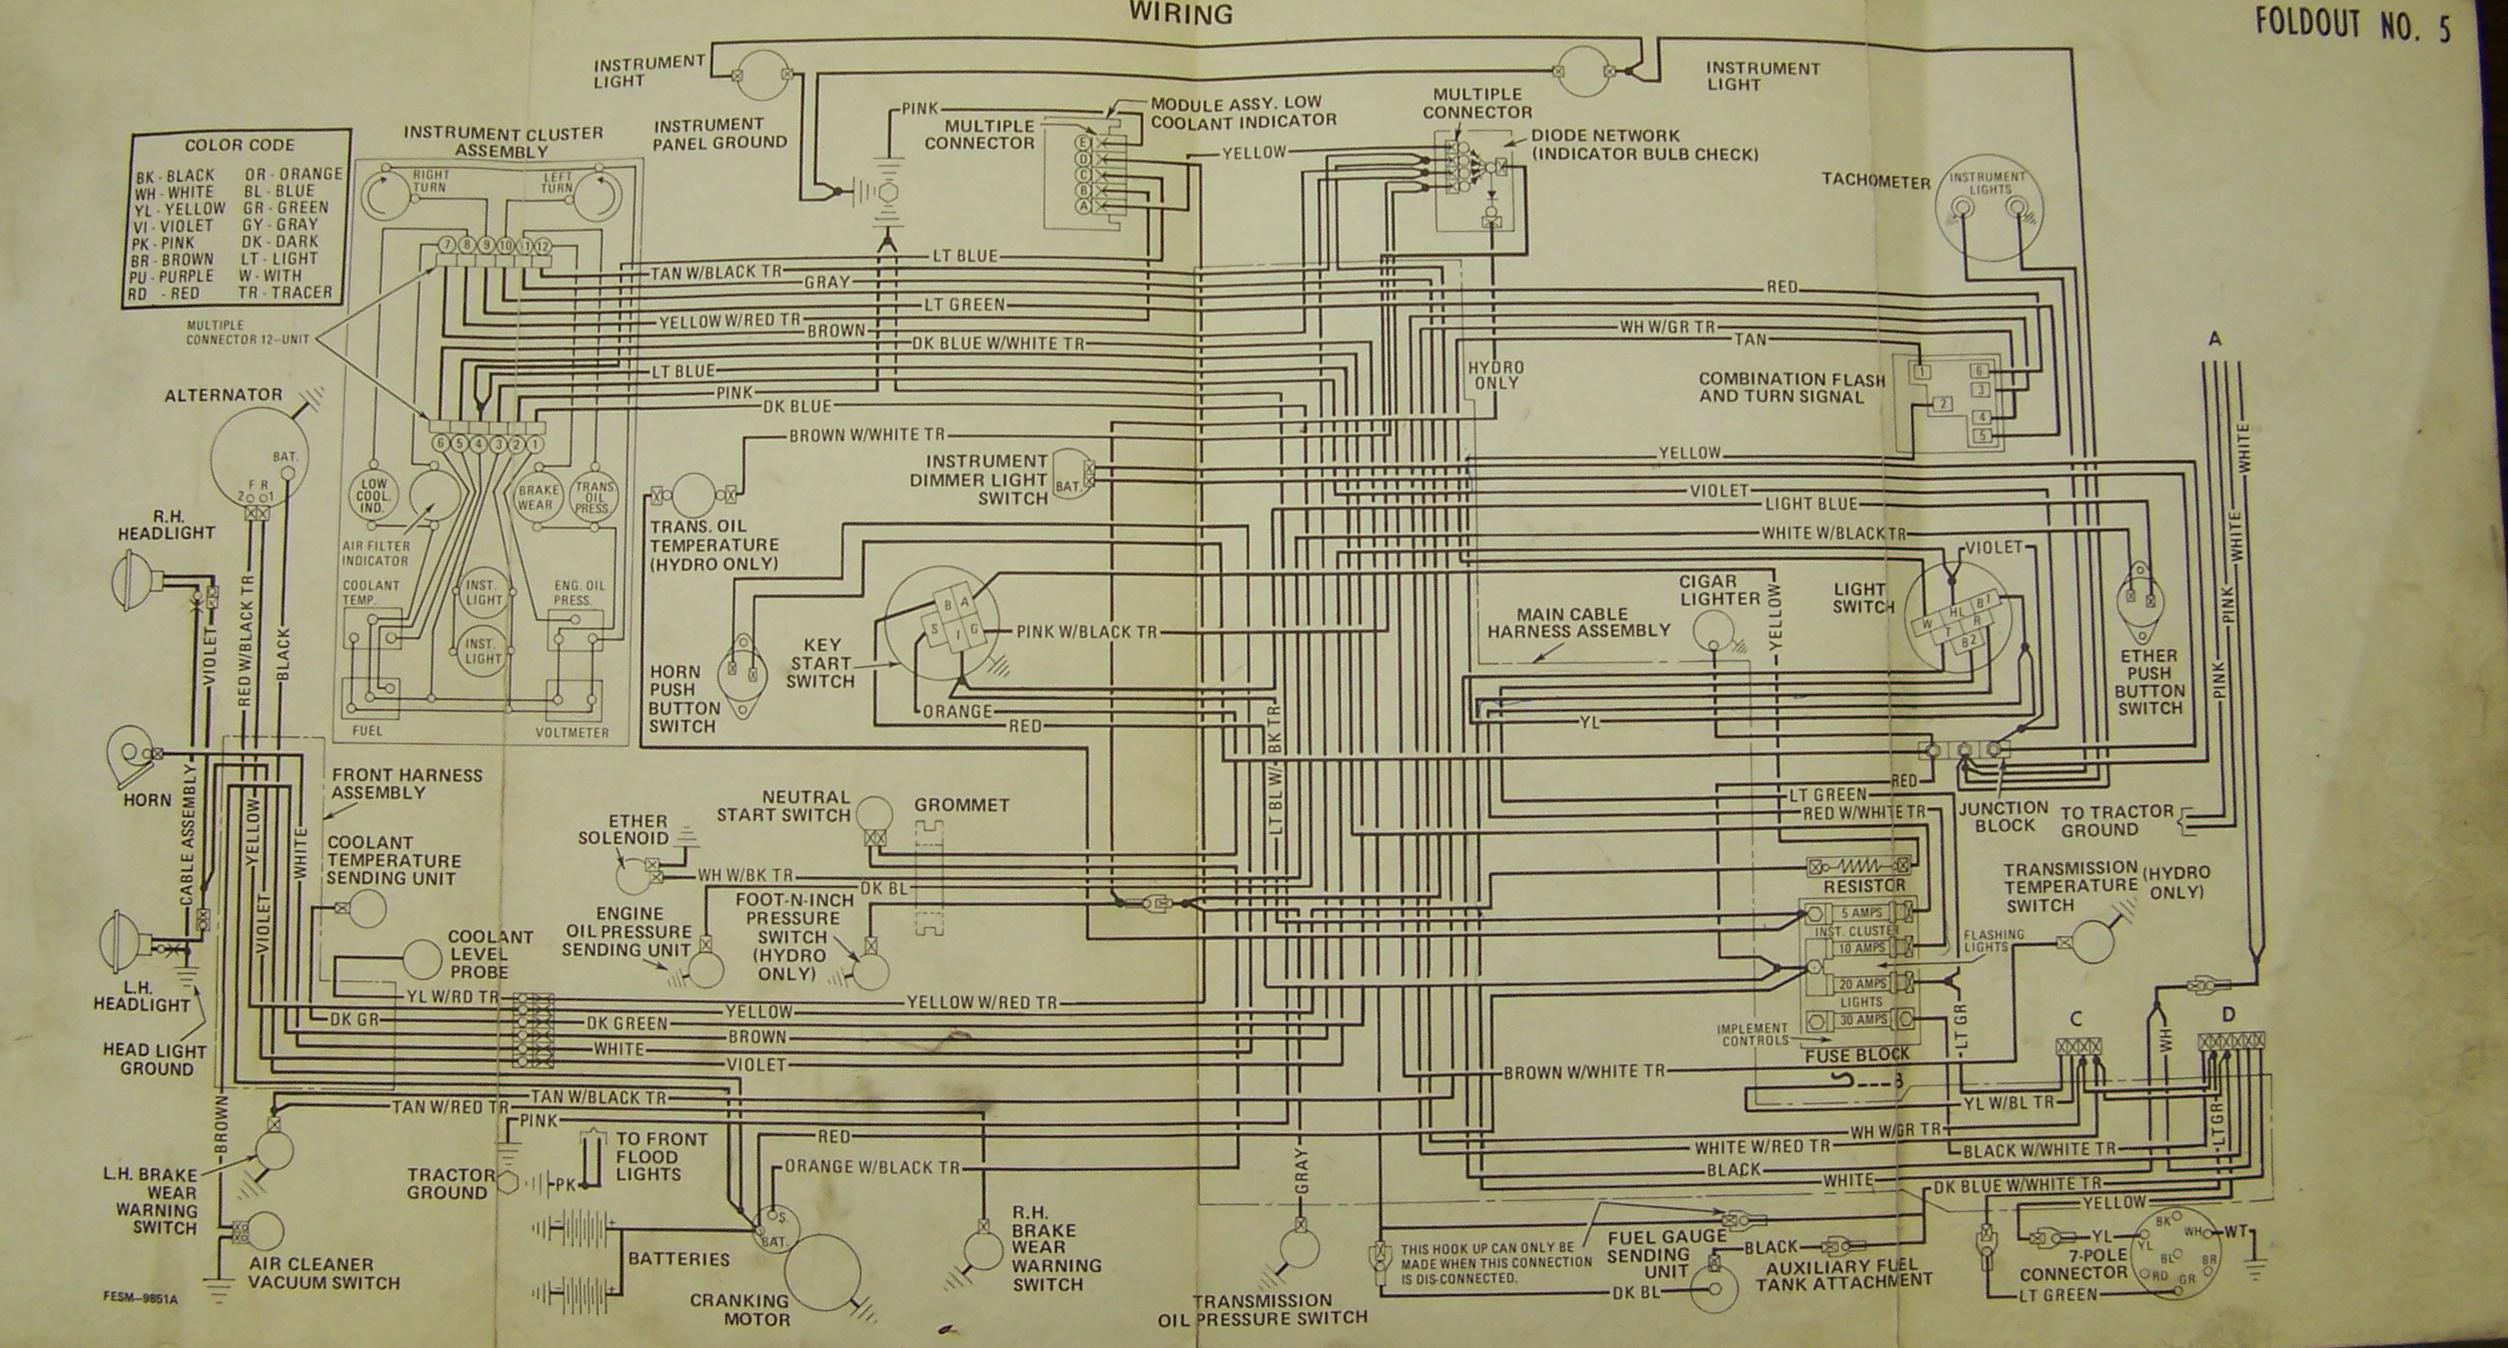 Ih 1066 Wiring Diagram List Of Schematic Circuit 584 Carter Gruenewald Co Inc Farmall Tractor Electrical Rh Cngco Com